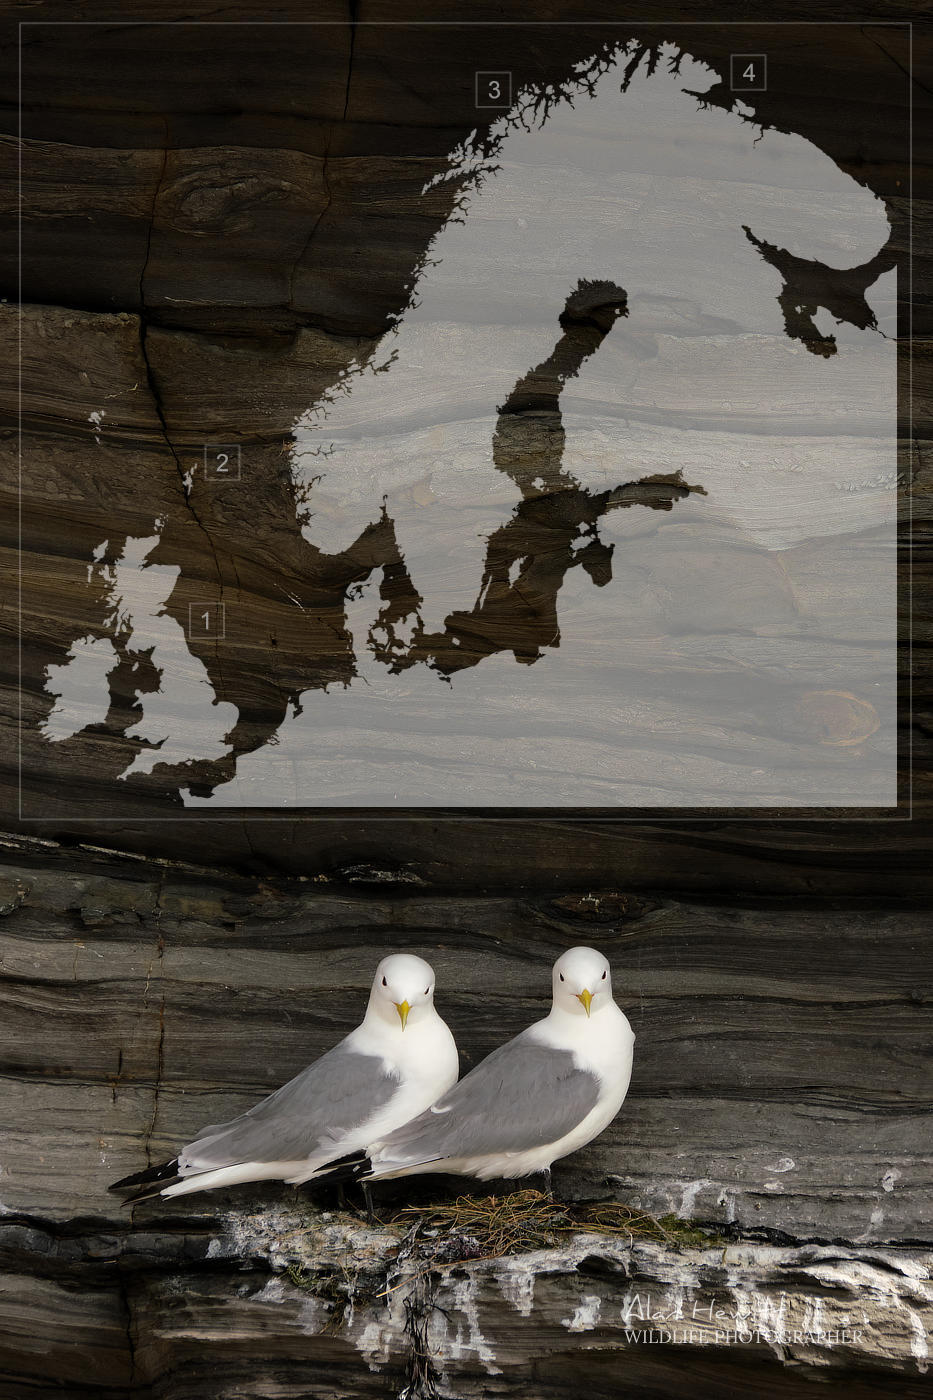 Seabirds in the City Locations